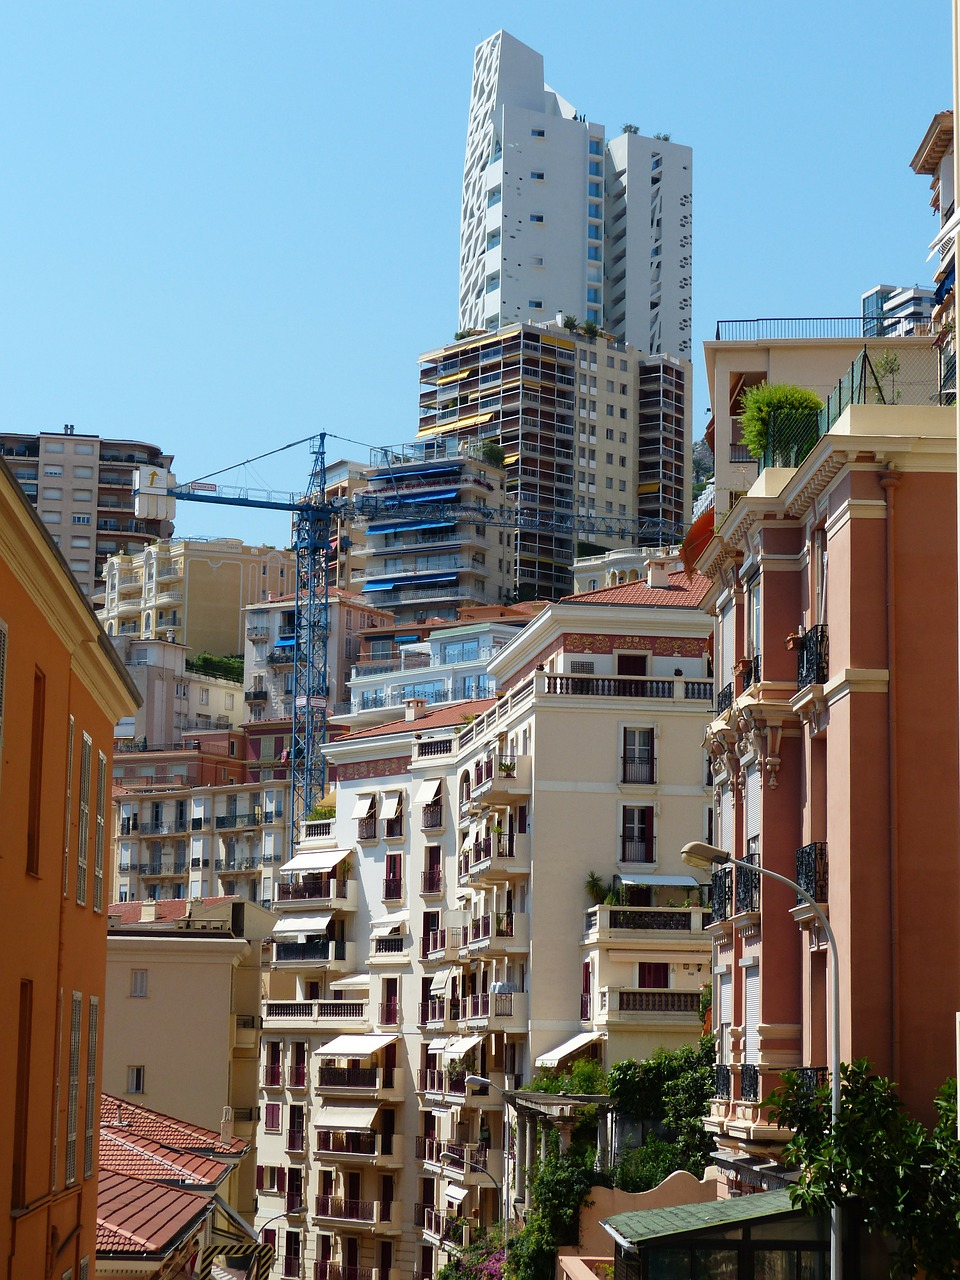 monaco street canyons skyscrapers free photo